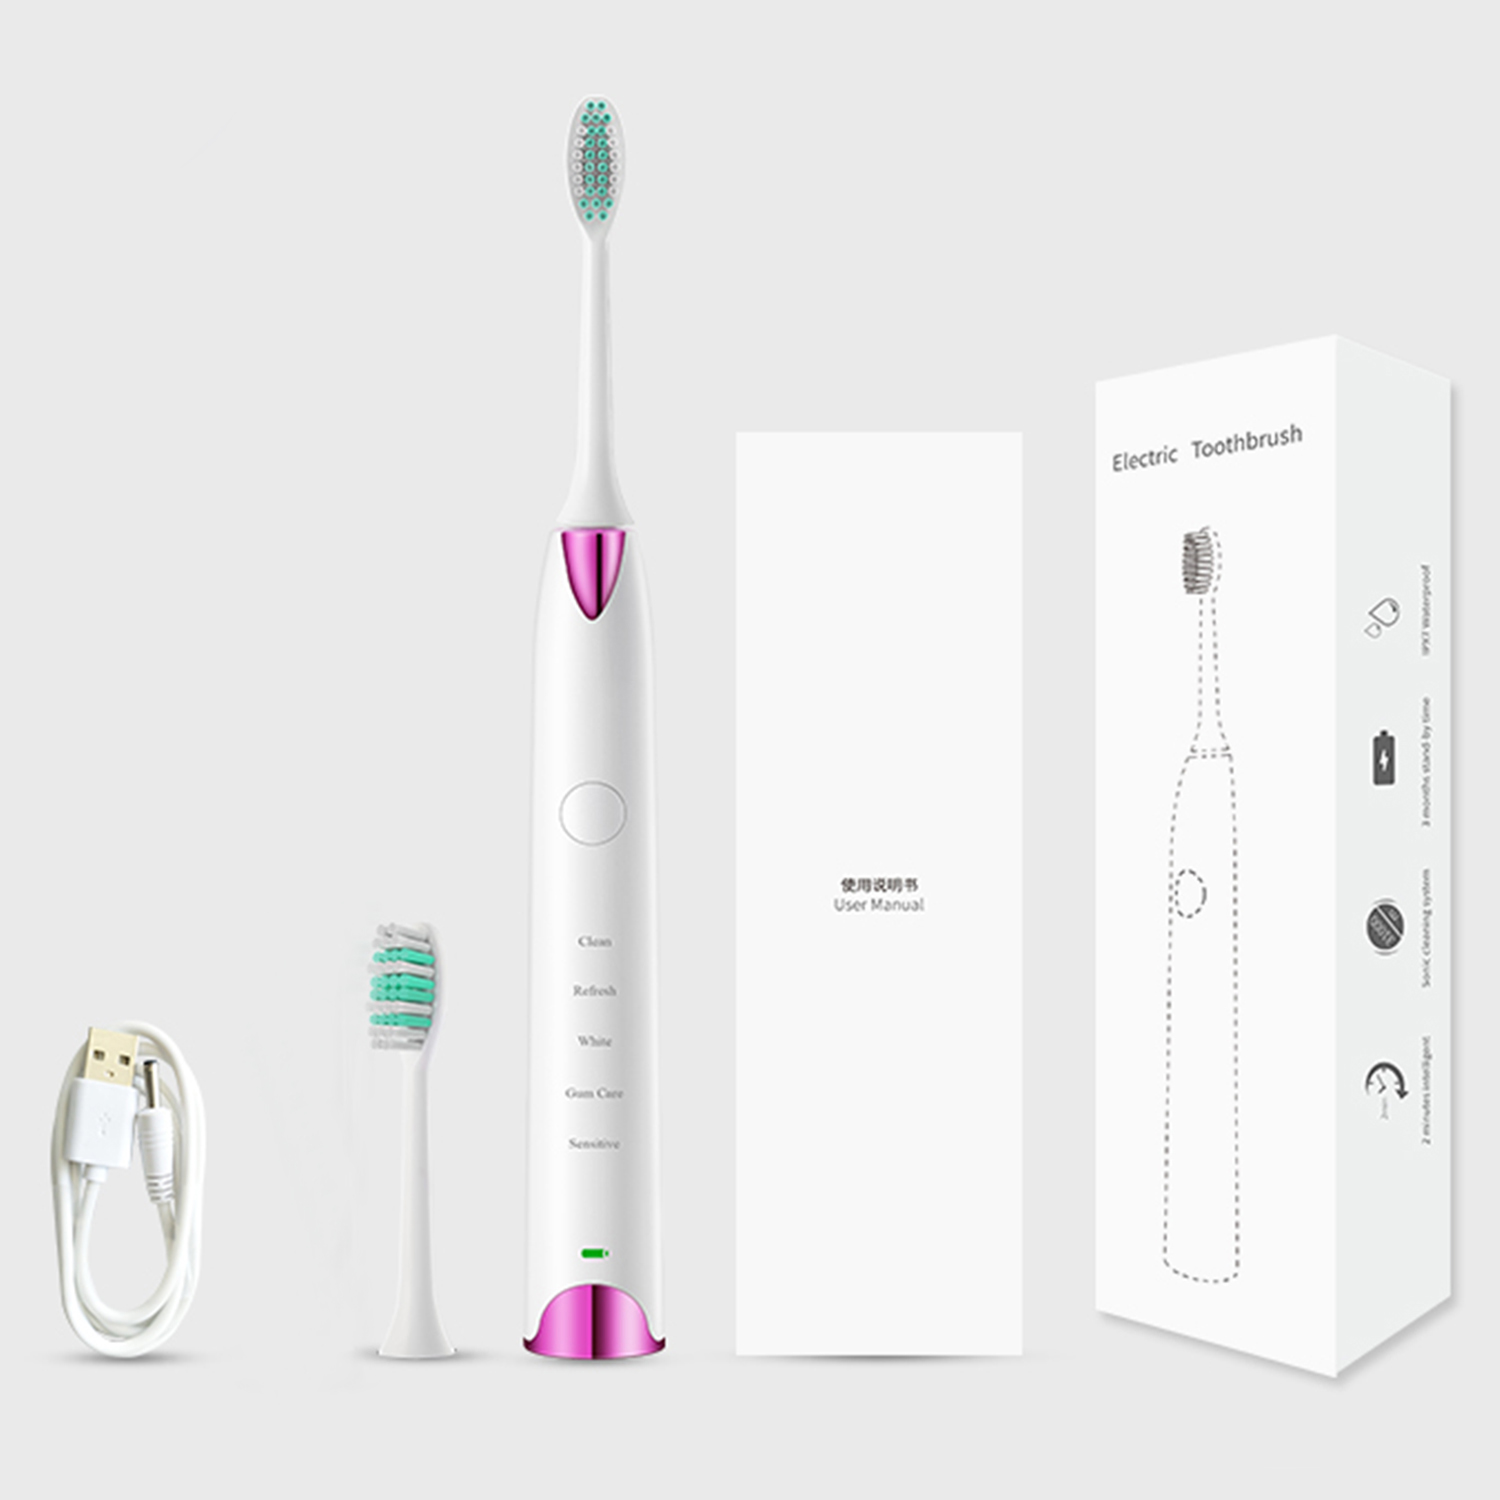 Retemporel Electric Toothbrush Sonic Toothbrush Rechargeable Power Toothbrush with 5 Optional Modes Waterproof White & Gold soocas x3 sonic electric toothbrush